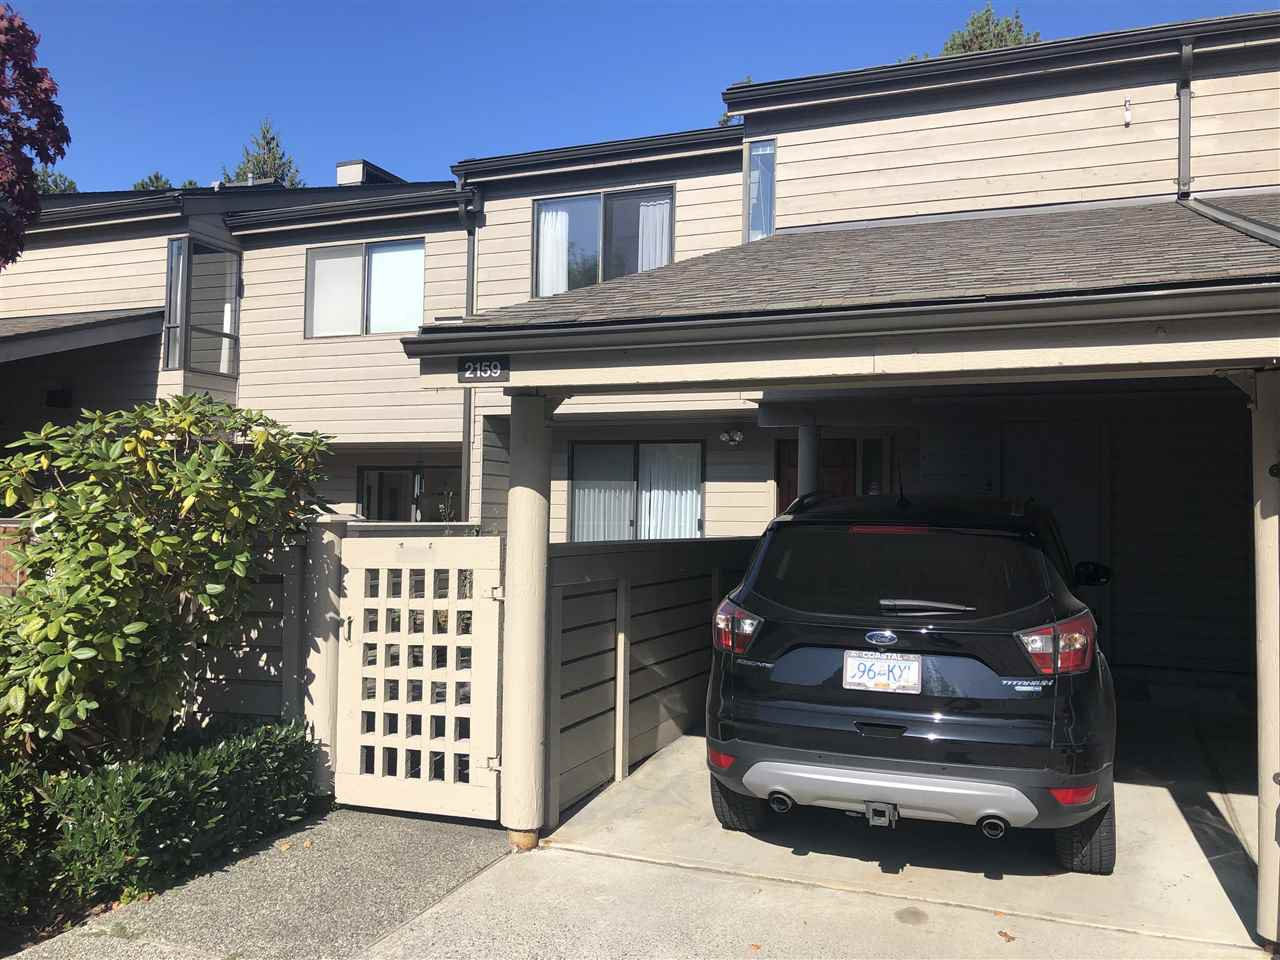 Main Photo: 2159 MCMULLEN Avenue in Vancouver: Quilchena Townhouse for sale (Vancouver West)  : MLS®# R2455599